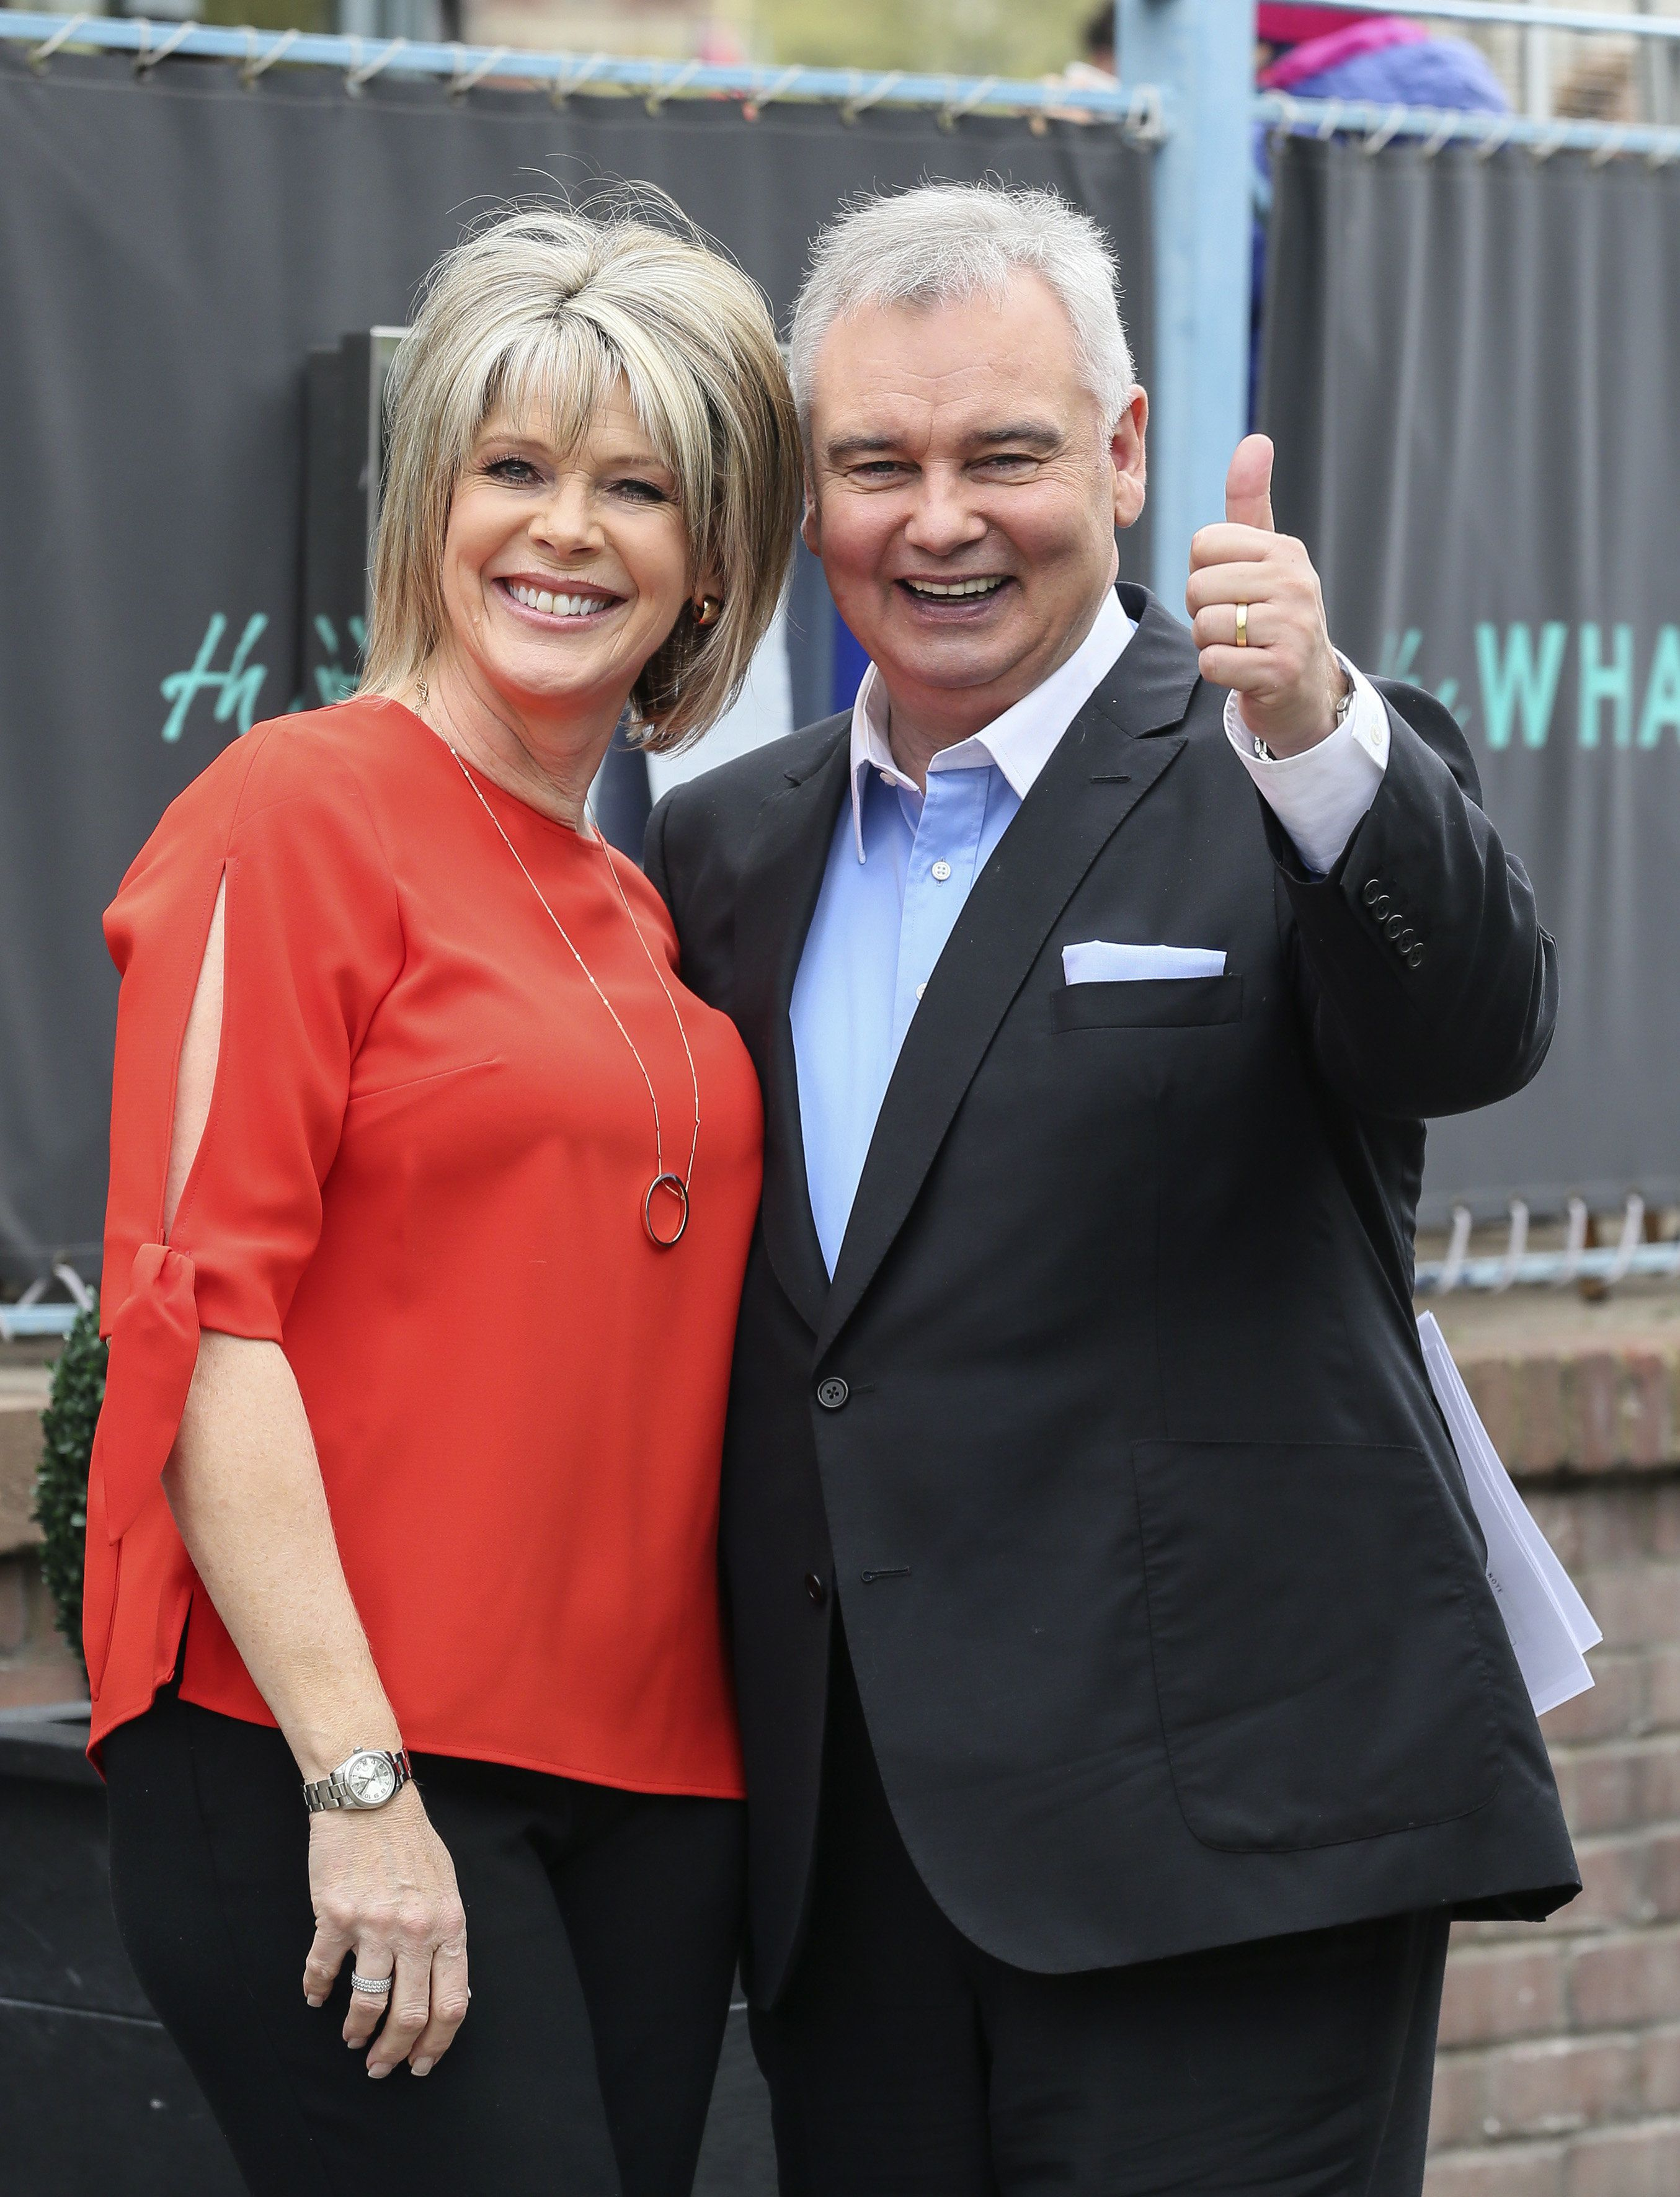 Satisfied: Ruth Langsford and Eamonn